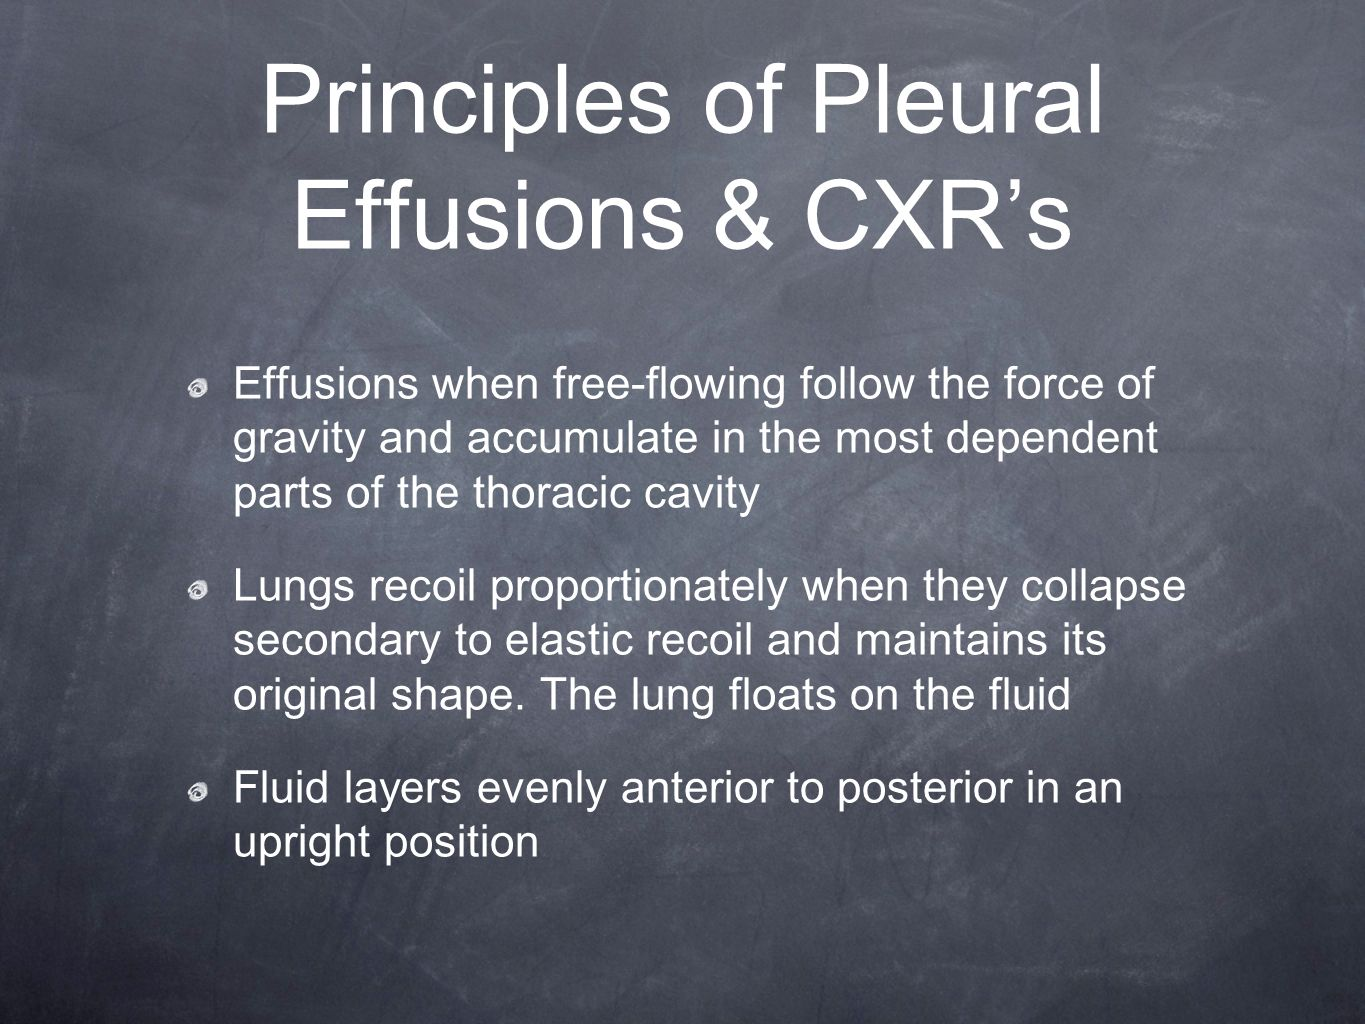 CXR Features of Subpulmonic Effusions Up to 1 liter can be present without blunting of the diaphragms Elevated hemidiaphragm peaks more laterally than expected with a steep lateral slope Pulmonary vessels are not clearly visible below the surface of the hemidiaphragm on lateral projection A lateral decubitus view will show free flowing pleural fluid parallel to the xray table